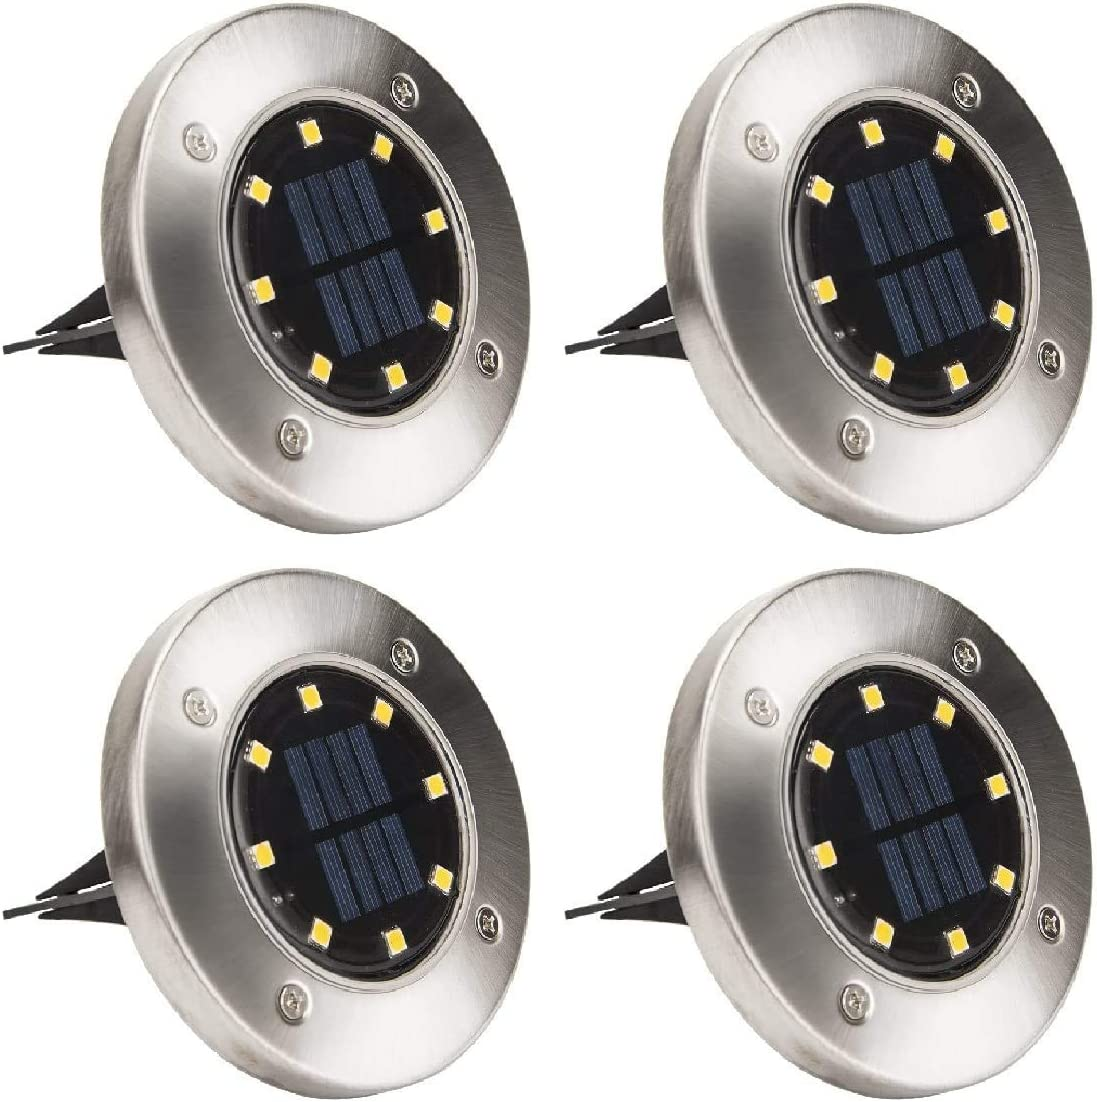 Hasako Solar Ground Lights Recommended 8 Warm LED Light safety Outdoor Disk